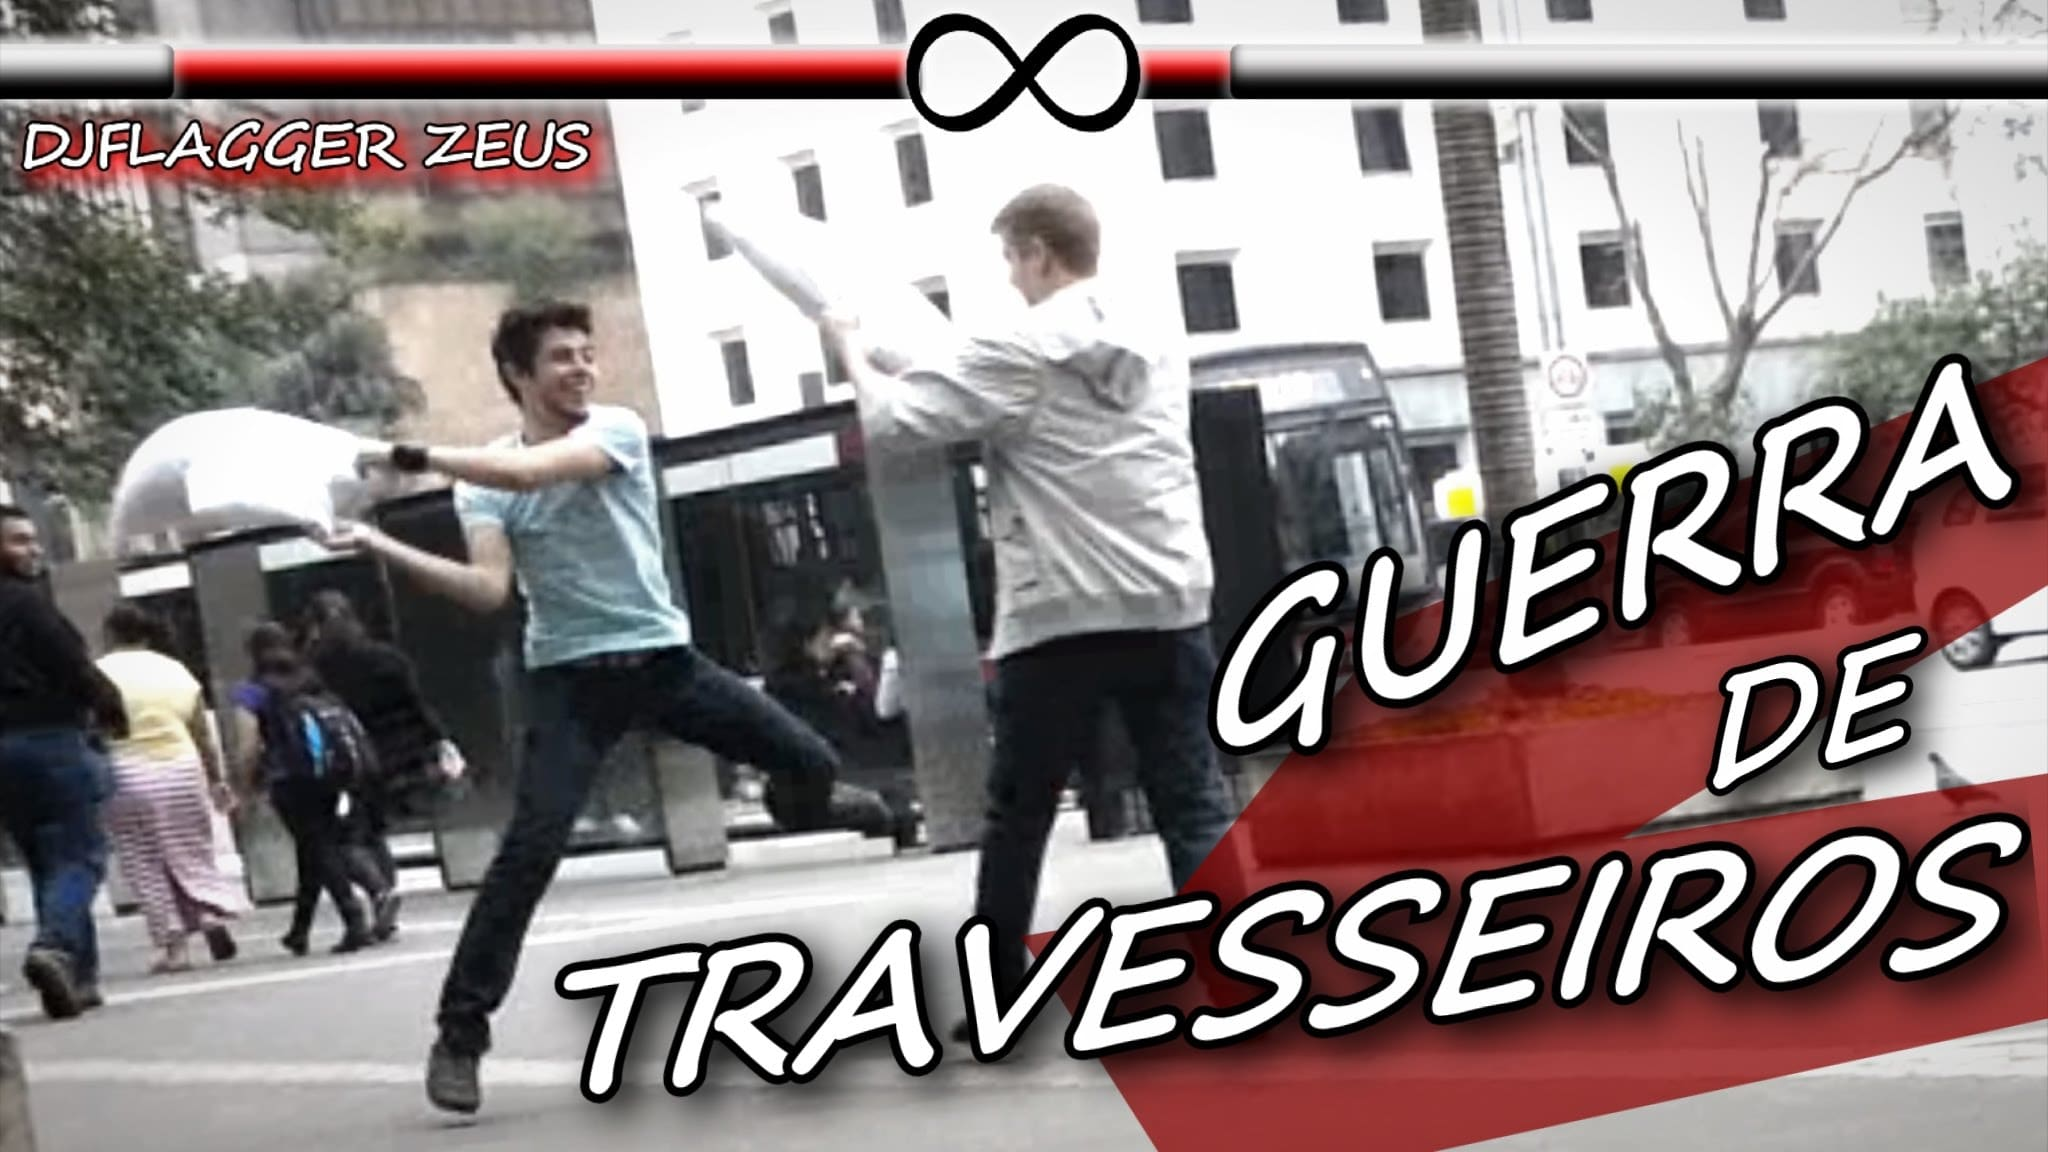 Photo of Guerra de Travesseiros (Pillow Fight Prank)